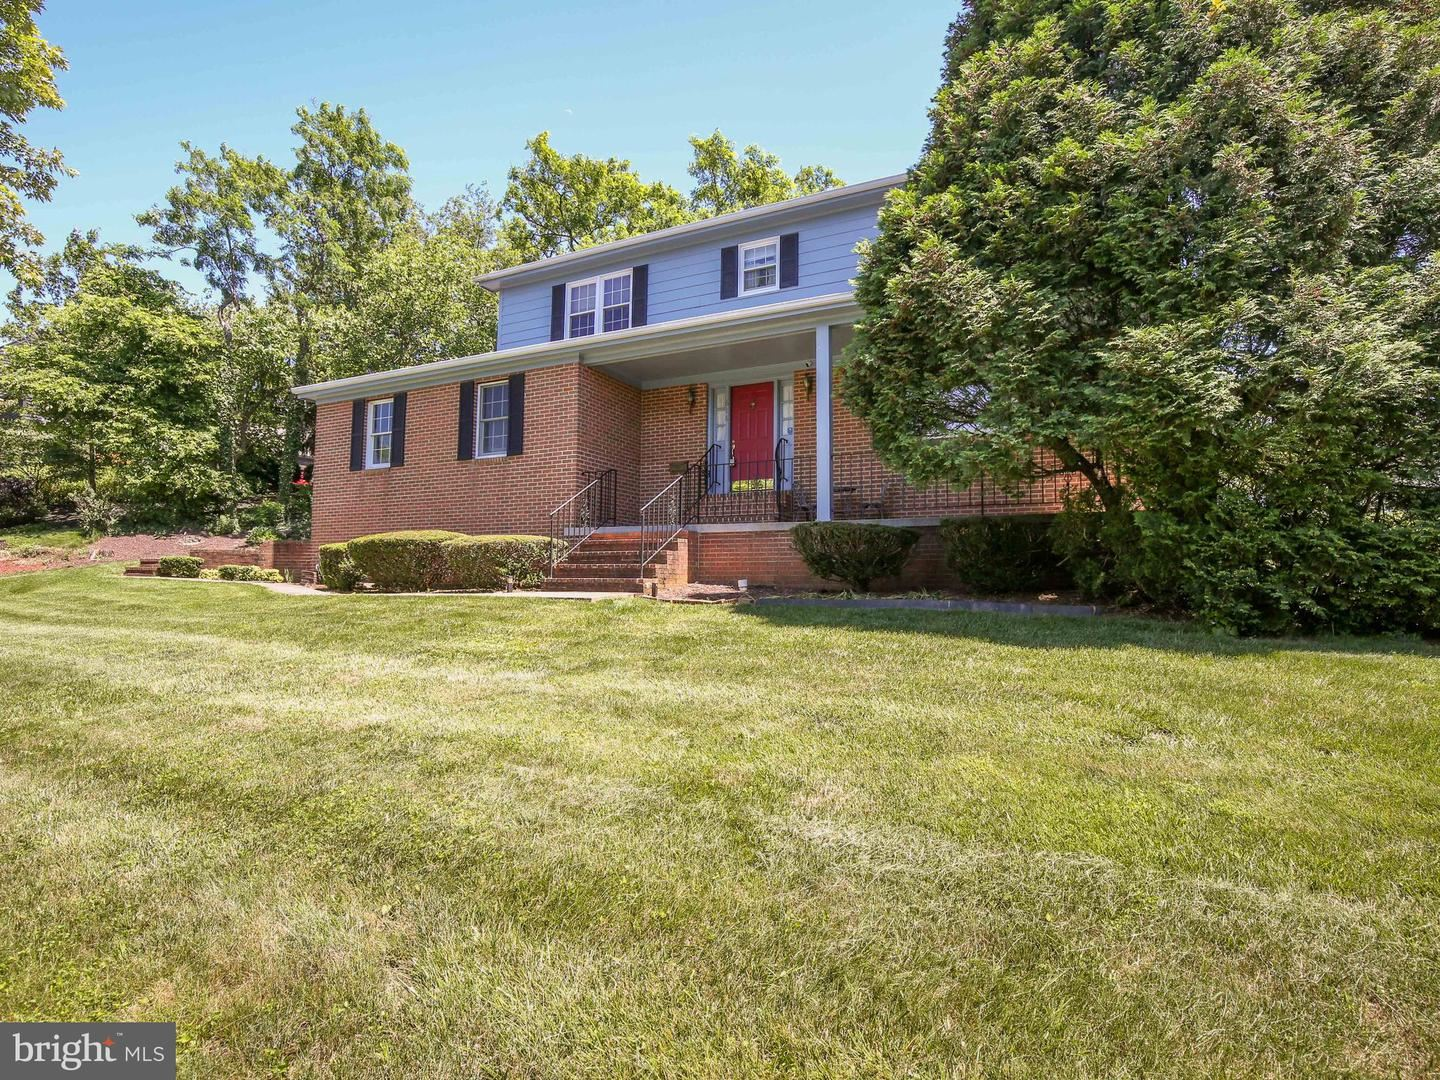 Photo for 616 BELLVIEW AVE, WINCHESTER, VA 22601 (MLS # VAWI2000578)